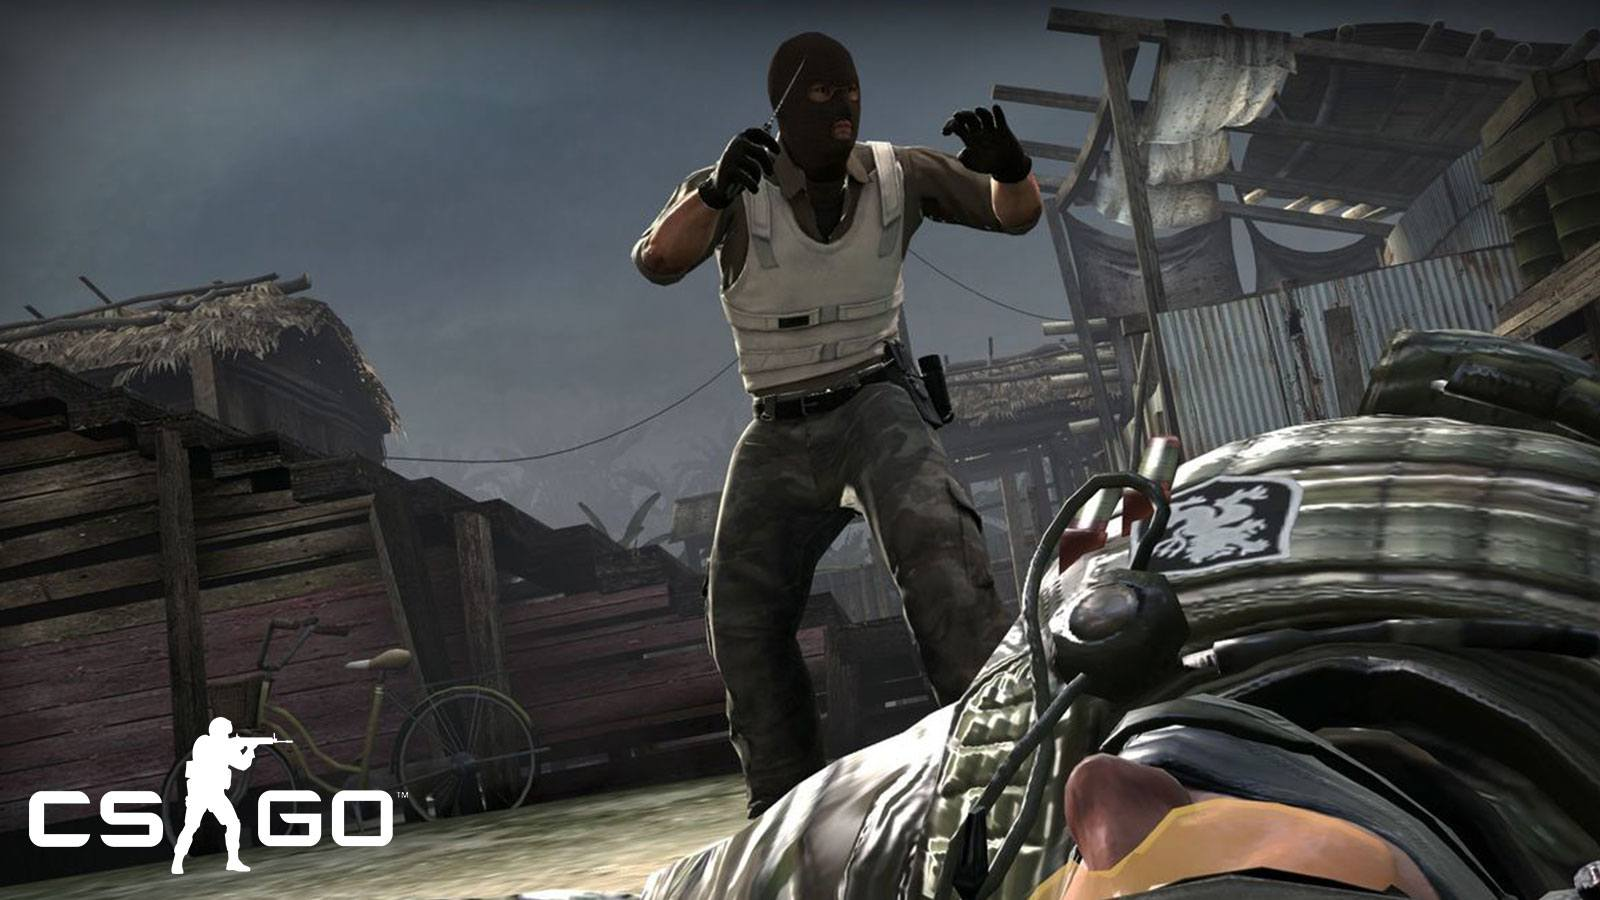 Image de gameplay de Counter Strike: Global Offensive